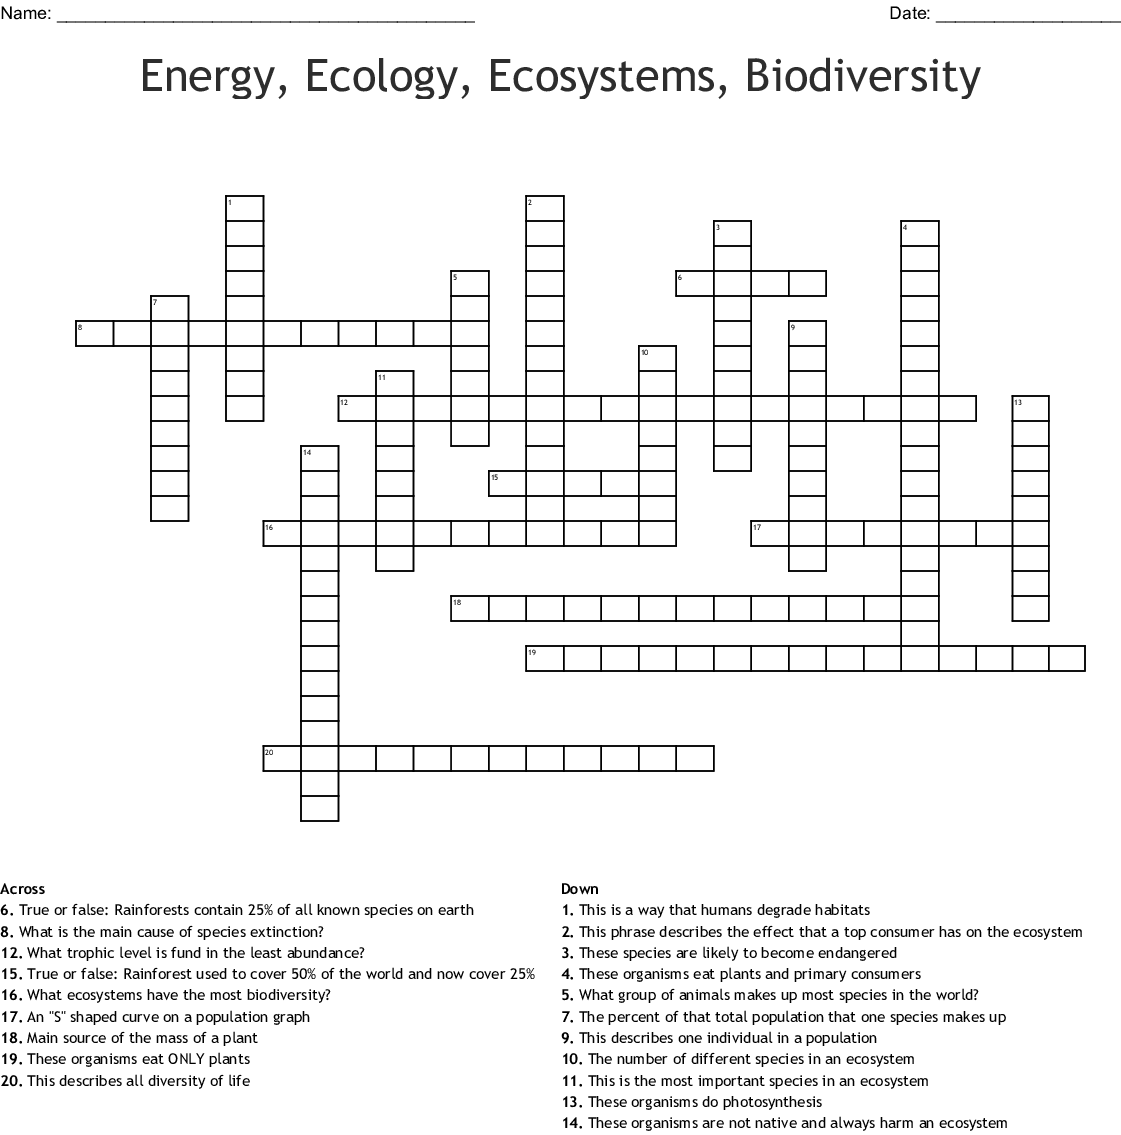 Energy Ecology Ecosystems Biodiversity Crossword